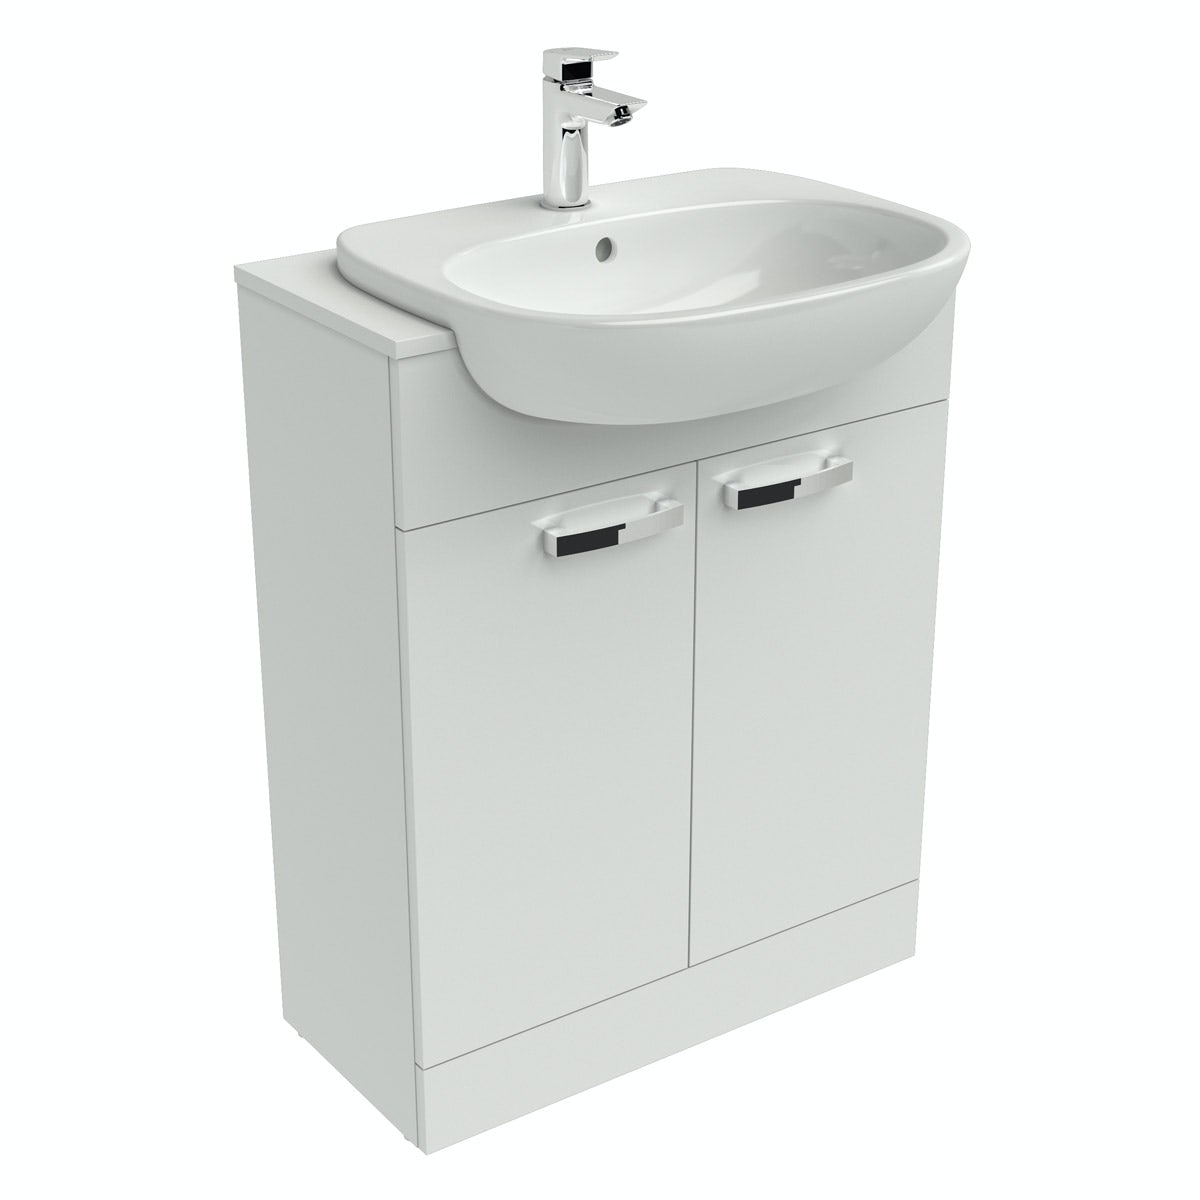 Ideal Standard Tesi white vanity door unit and basin 650mm